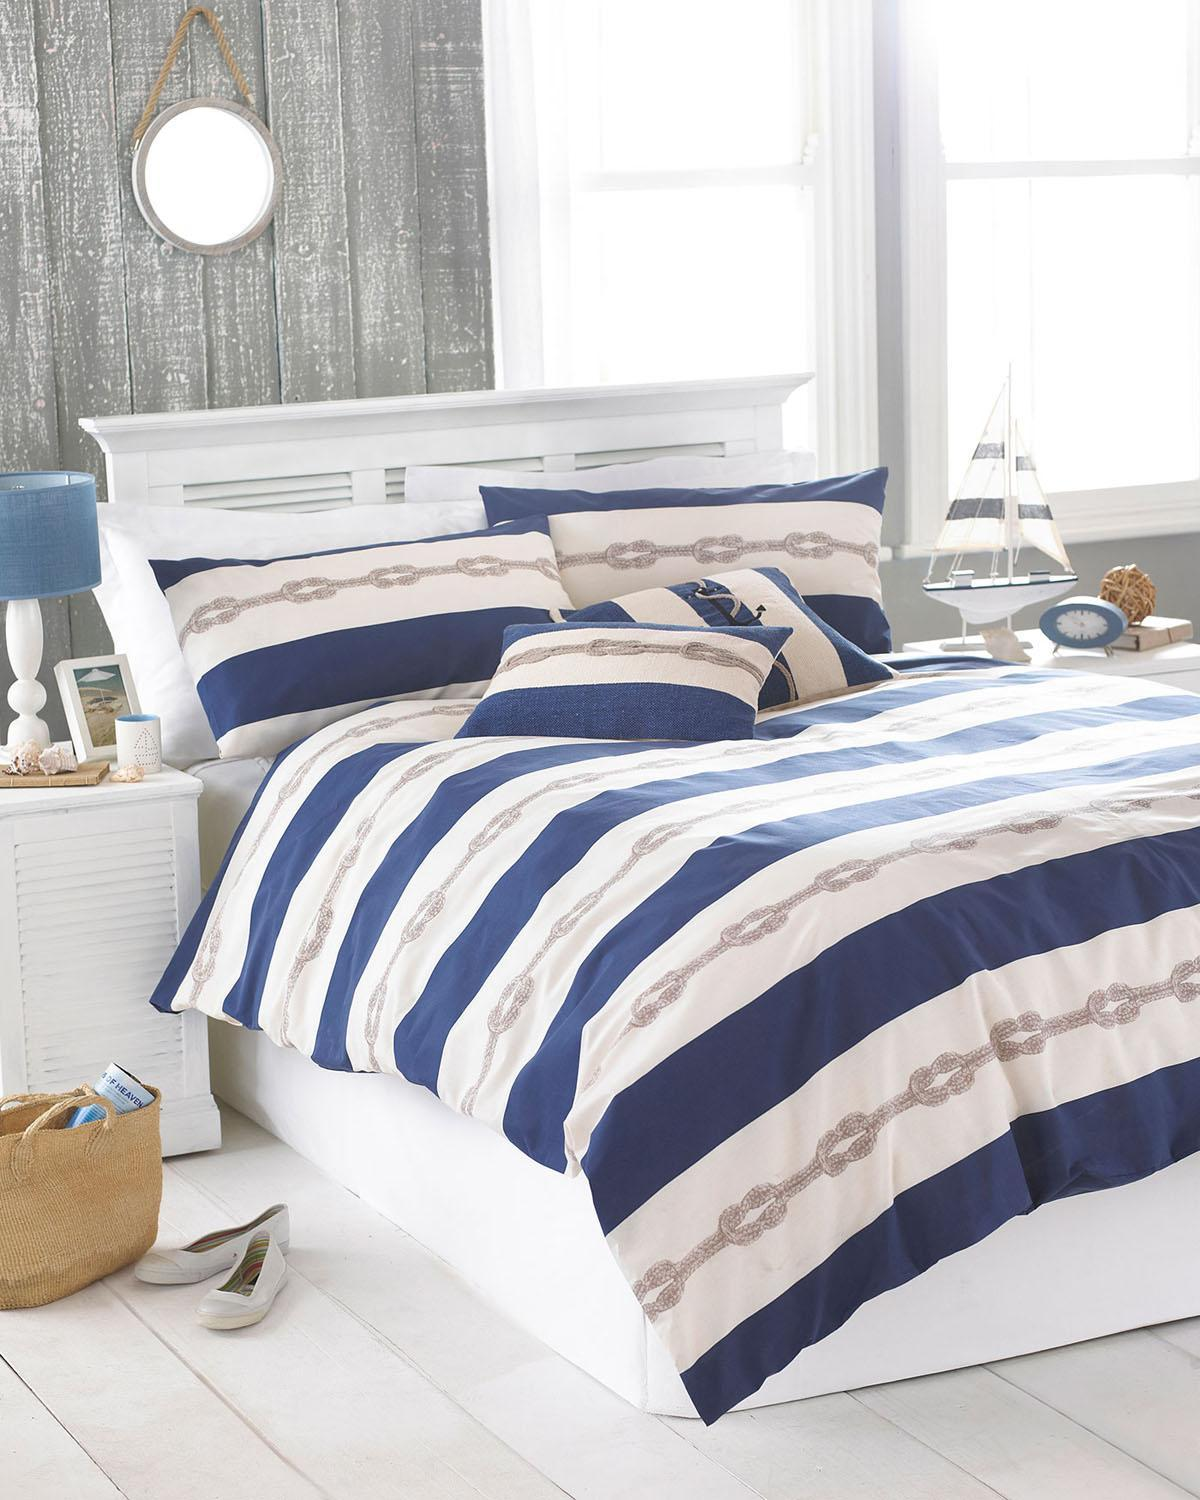 Riva Bedding Reef Printed Bedding Set Blue Picture